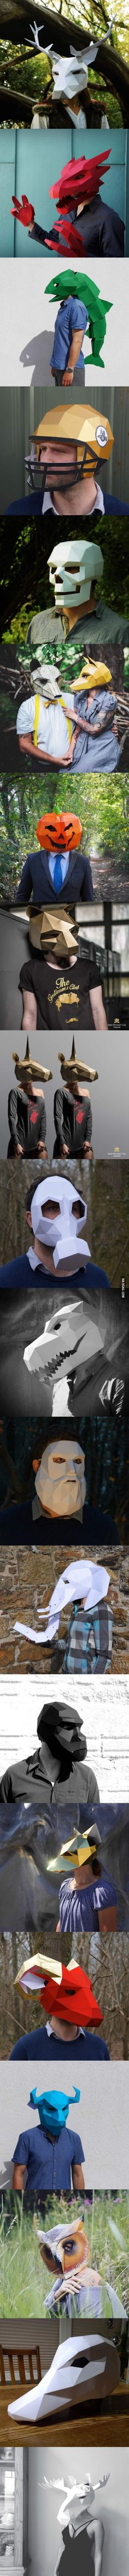 Really Cool Paper Masks                                                                                                                                                                                 More